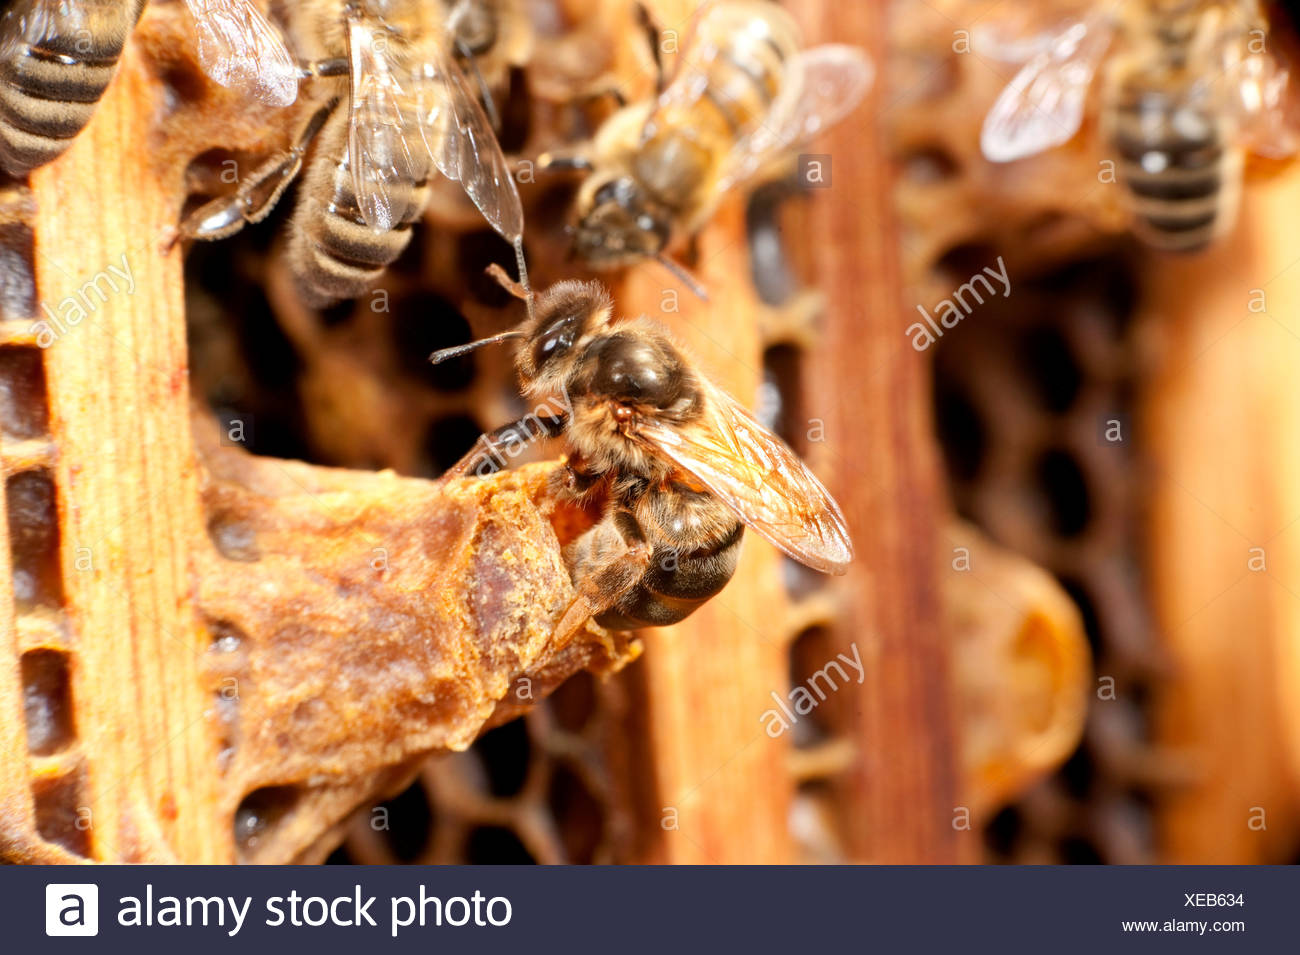 New Queen Honey Bee hatching from queen cell within hive Apis mellifera Kent UK - Stock Image